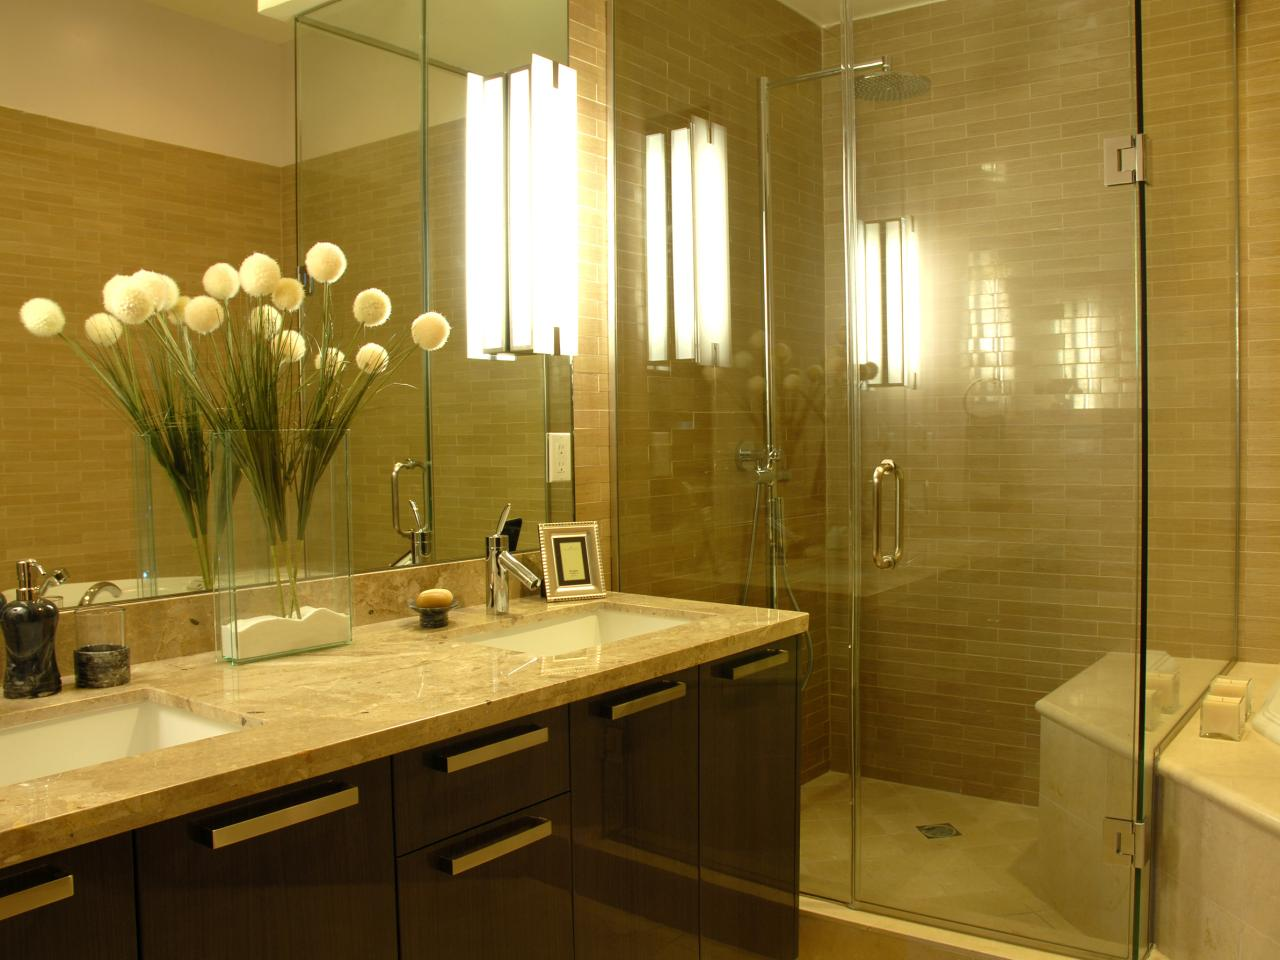 Bathroom Lights That Let You Shine HGTV - Gold bathroom light fixtures for bathroom decor ideas